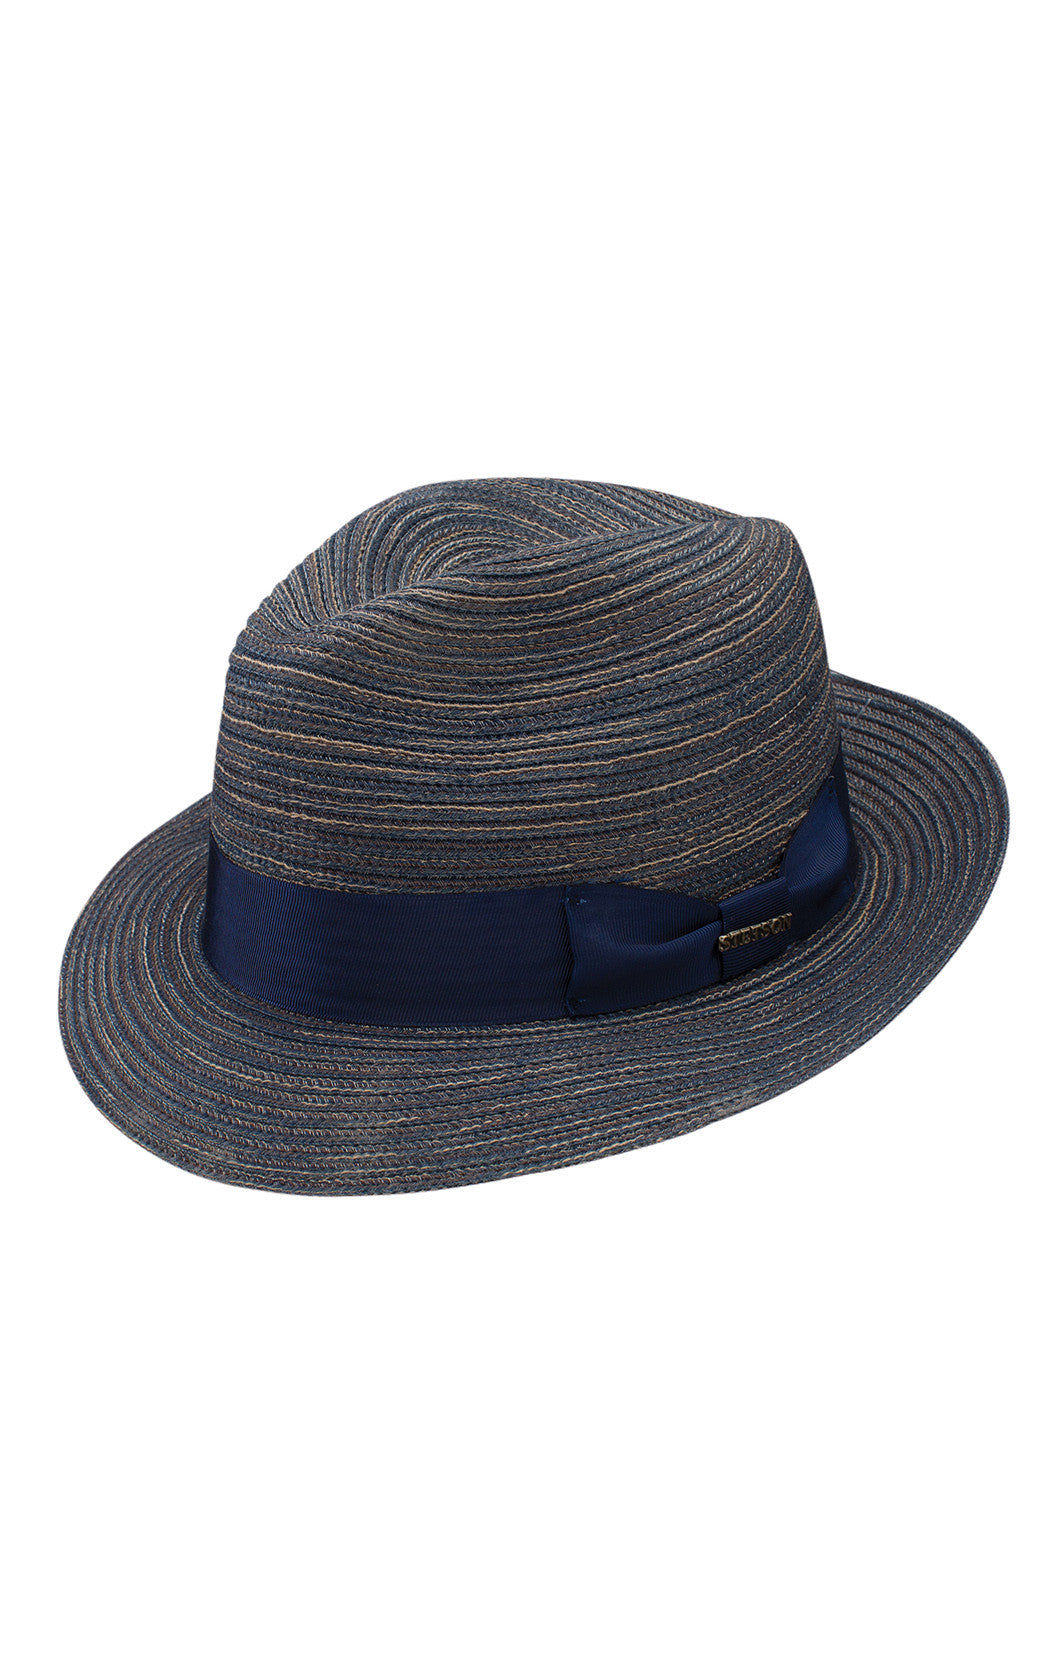 mens straw hat, stetson hat, summer hats for men, mens hats